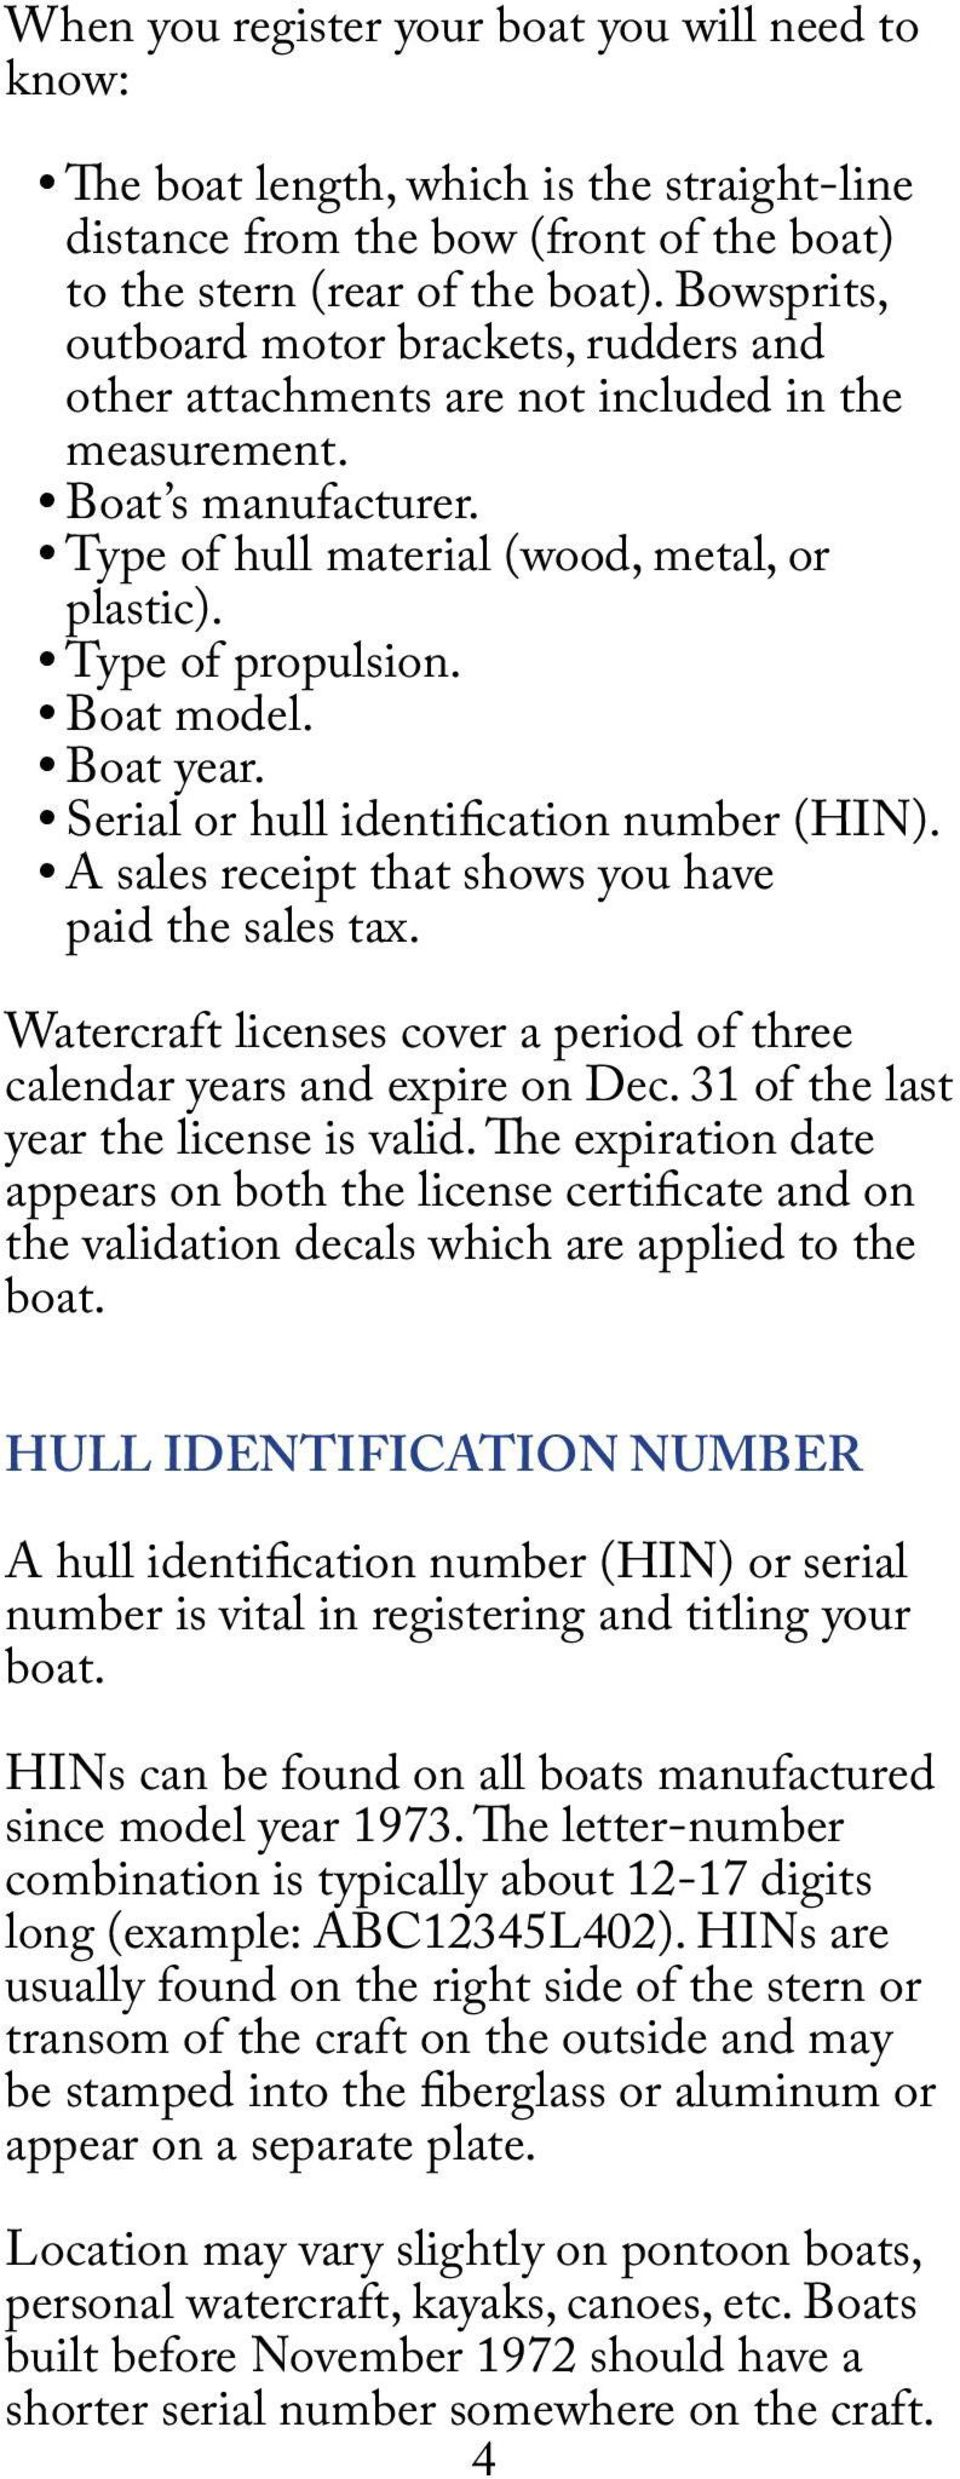 Boat model. Boat year. Serial or hull identification number (HIN). A sales receipt that shows you have paid the sales tax. Watercraft licenses cover a period of three calendar years and expire on Dec.